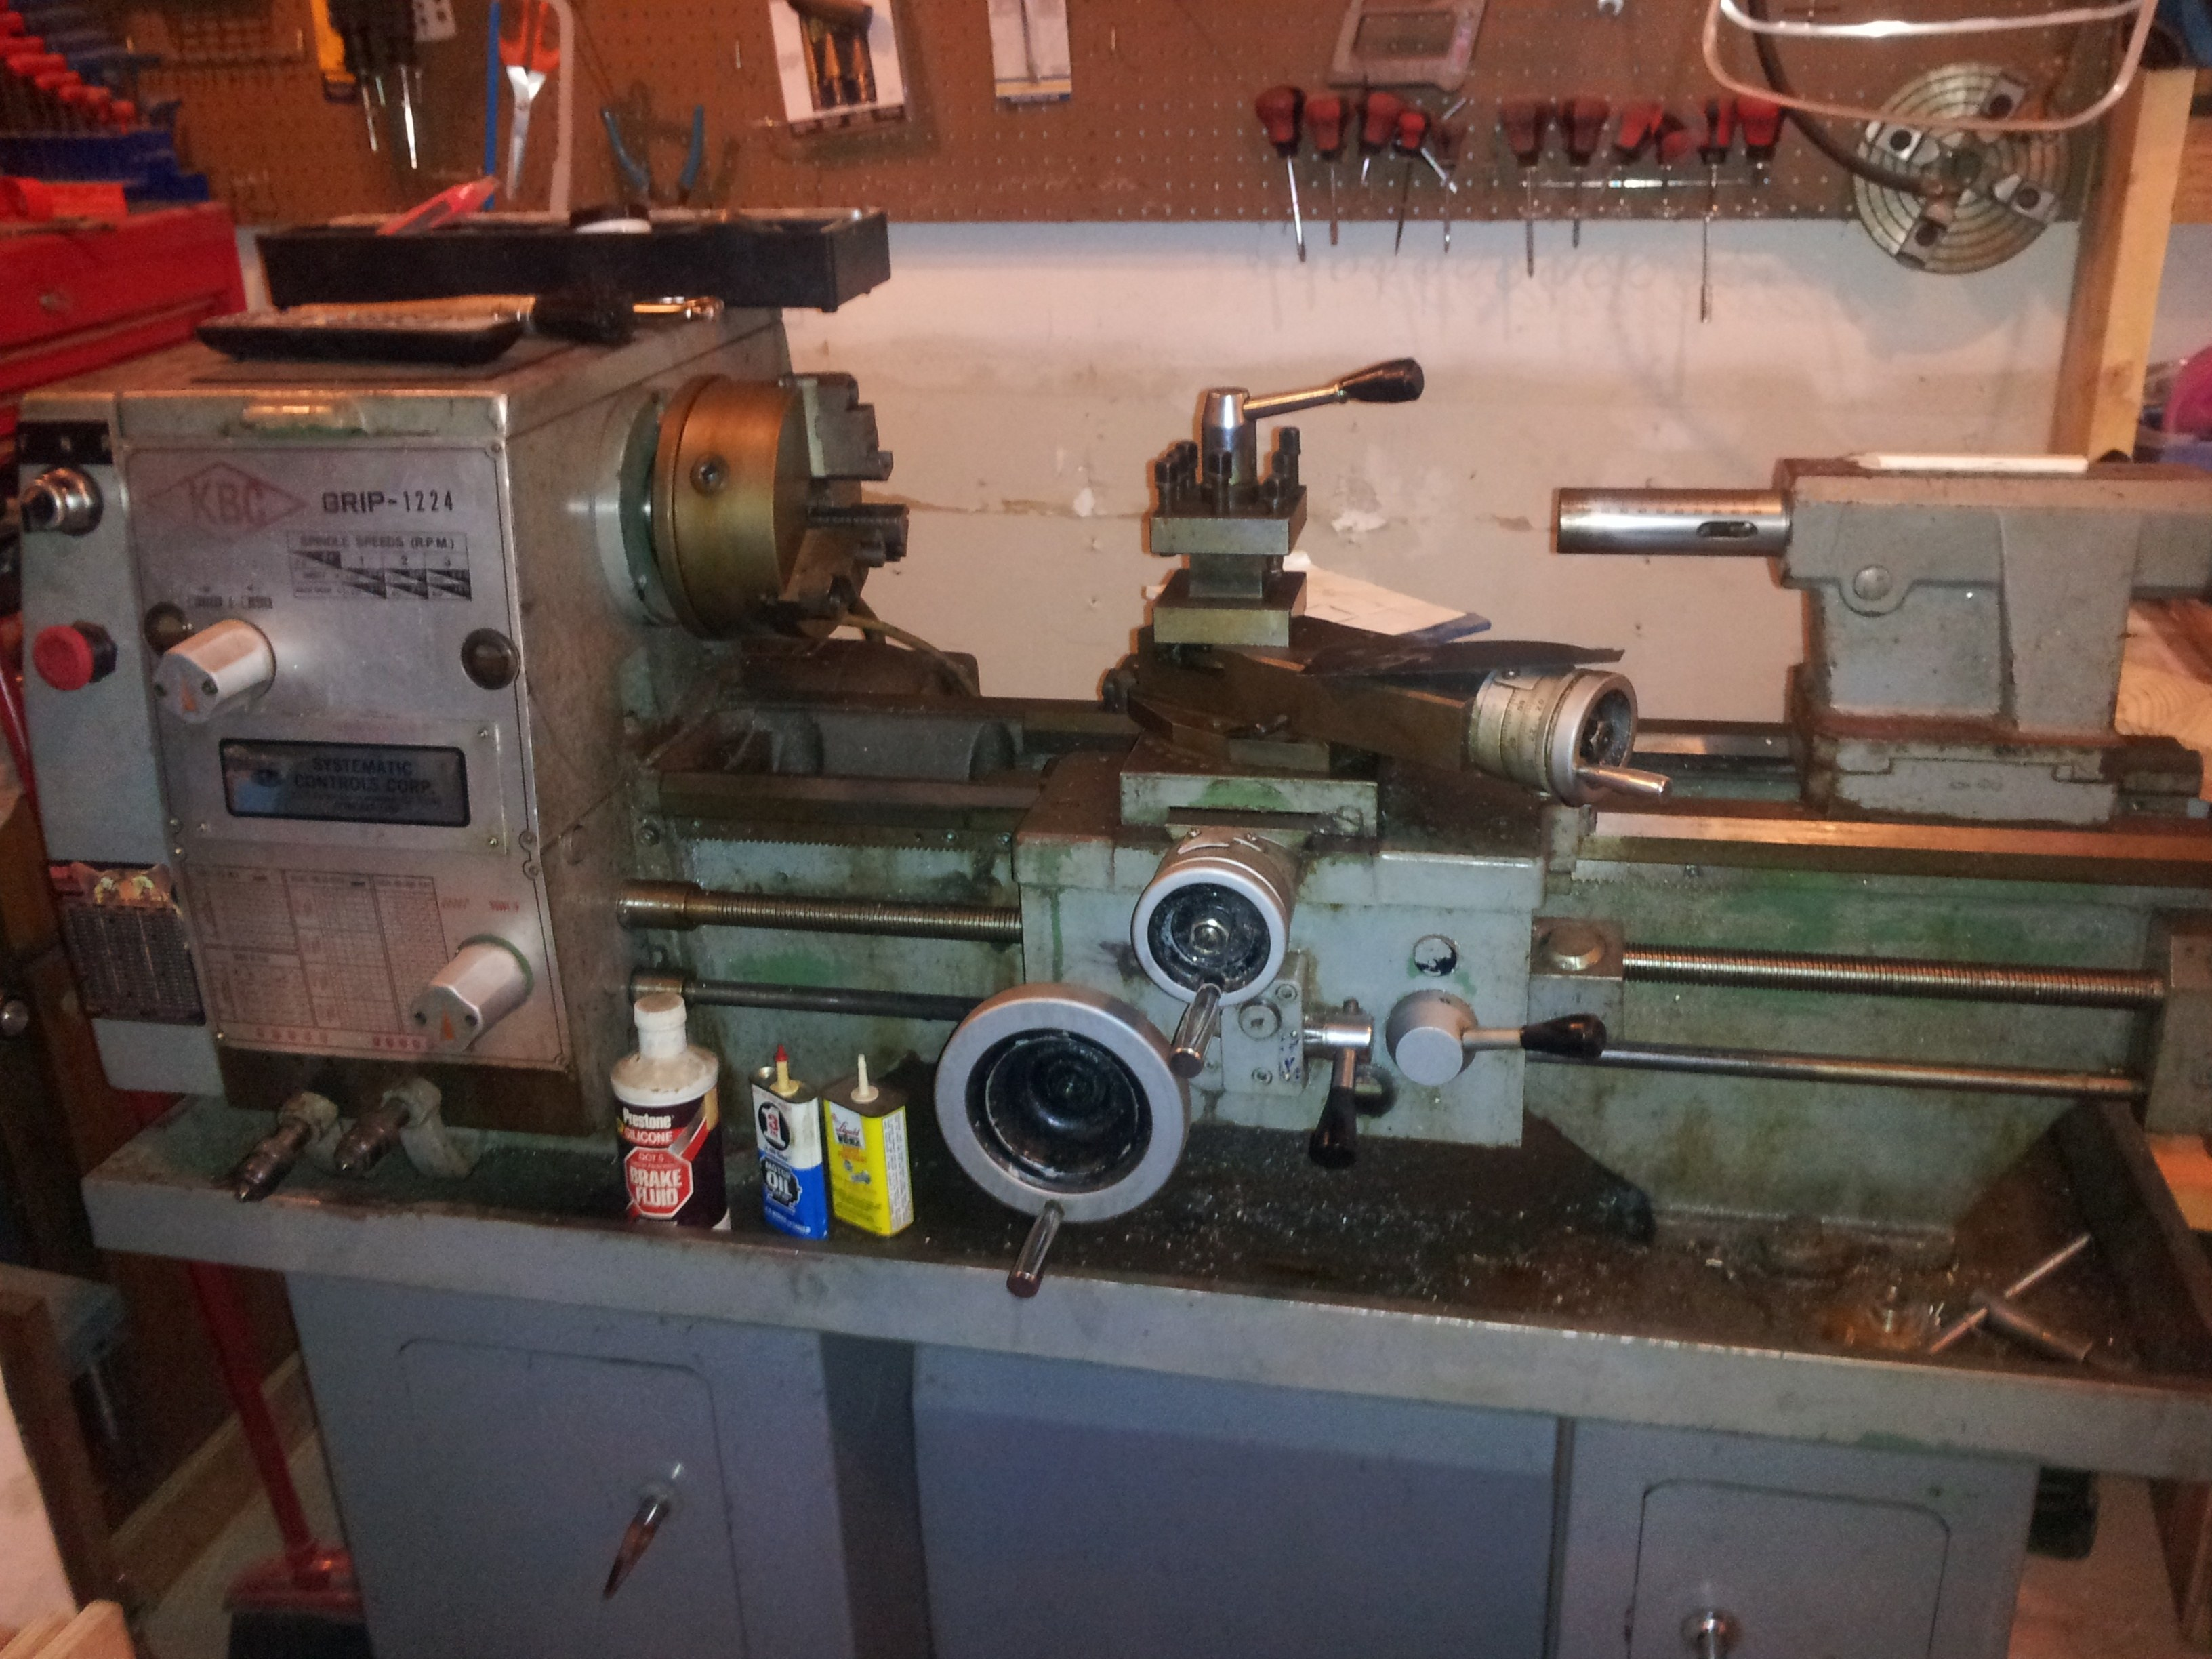 Metal Lathe For Sale >> I Am Looking To Purchase A New Metal Lathe Has Anyone Had Any